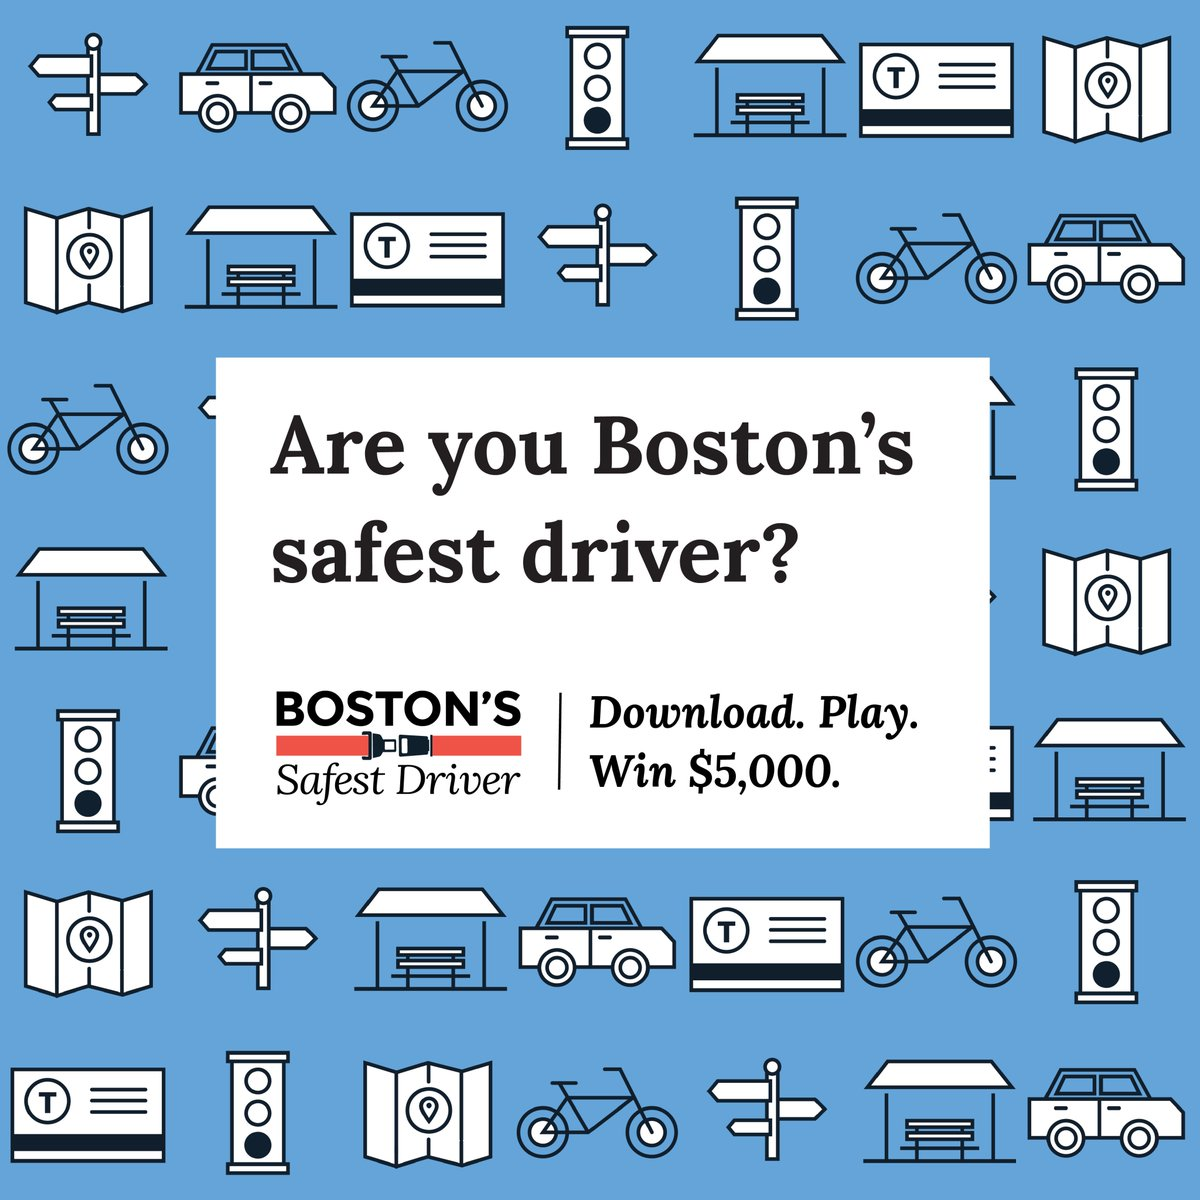 Want to win $$$ for driving safely? Download the Bostons Safest Driver app today! Biweekly prizes of $50 and a grand prize of $5,000! Available on iOS and Android. More info at boston.gov/safestdriver